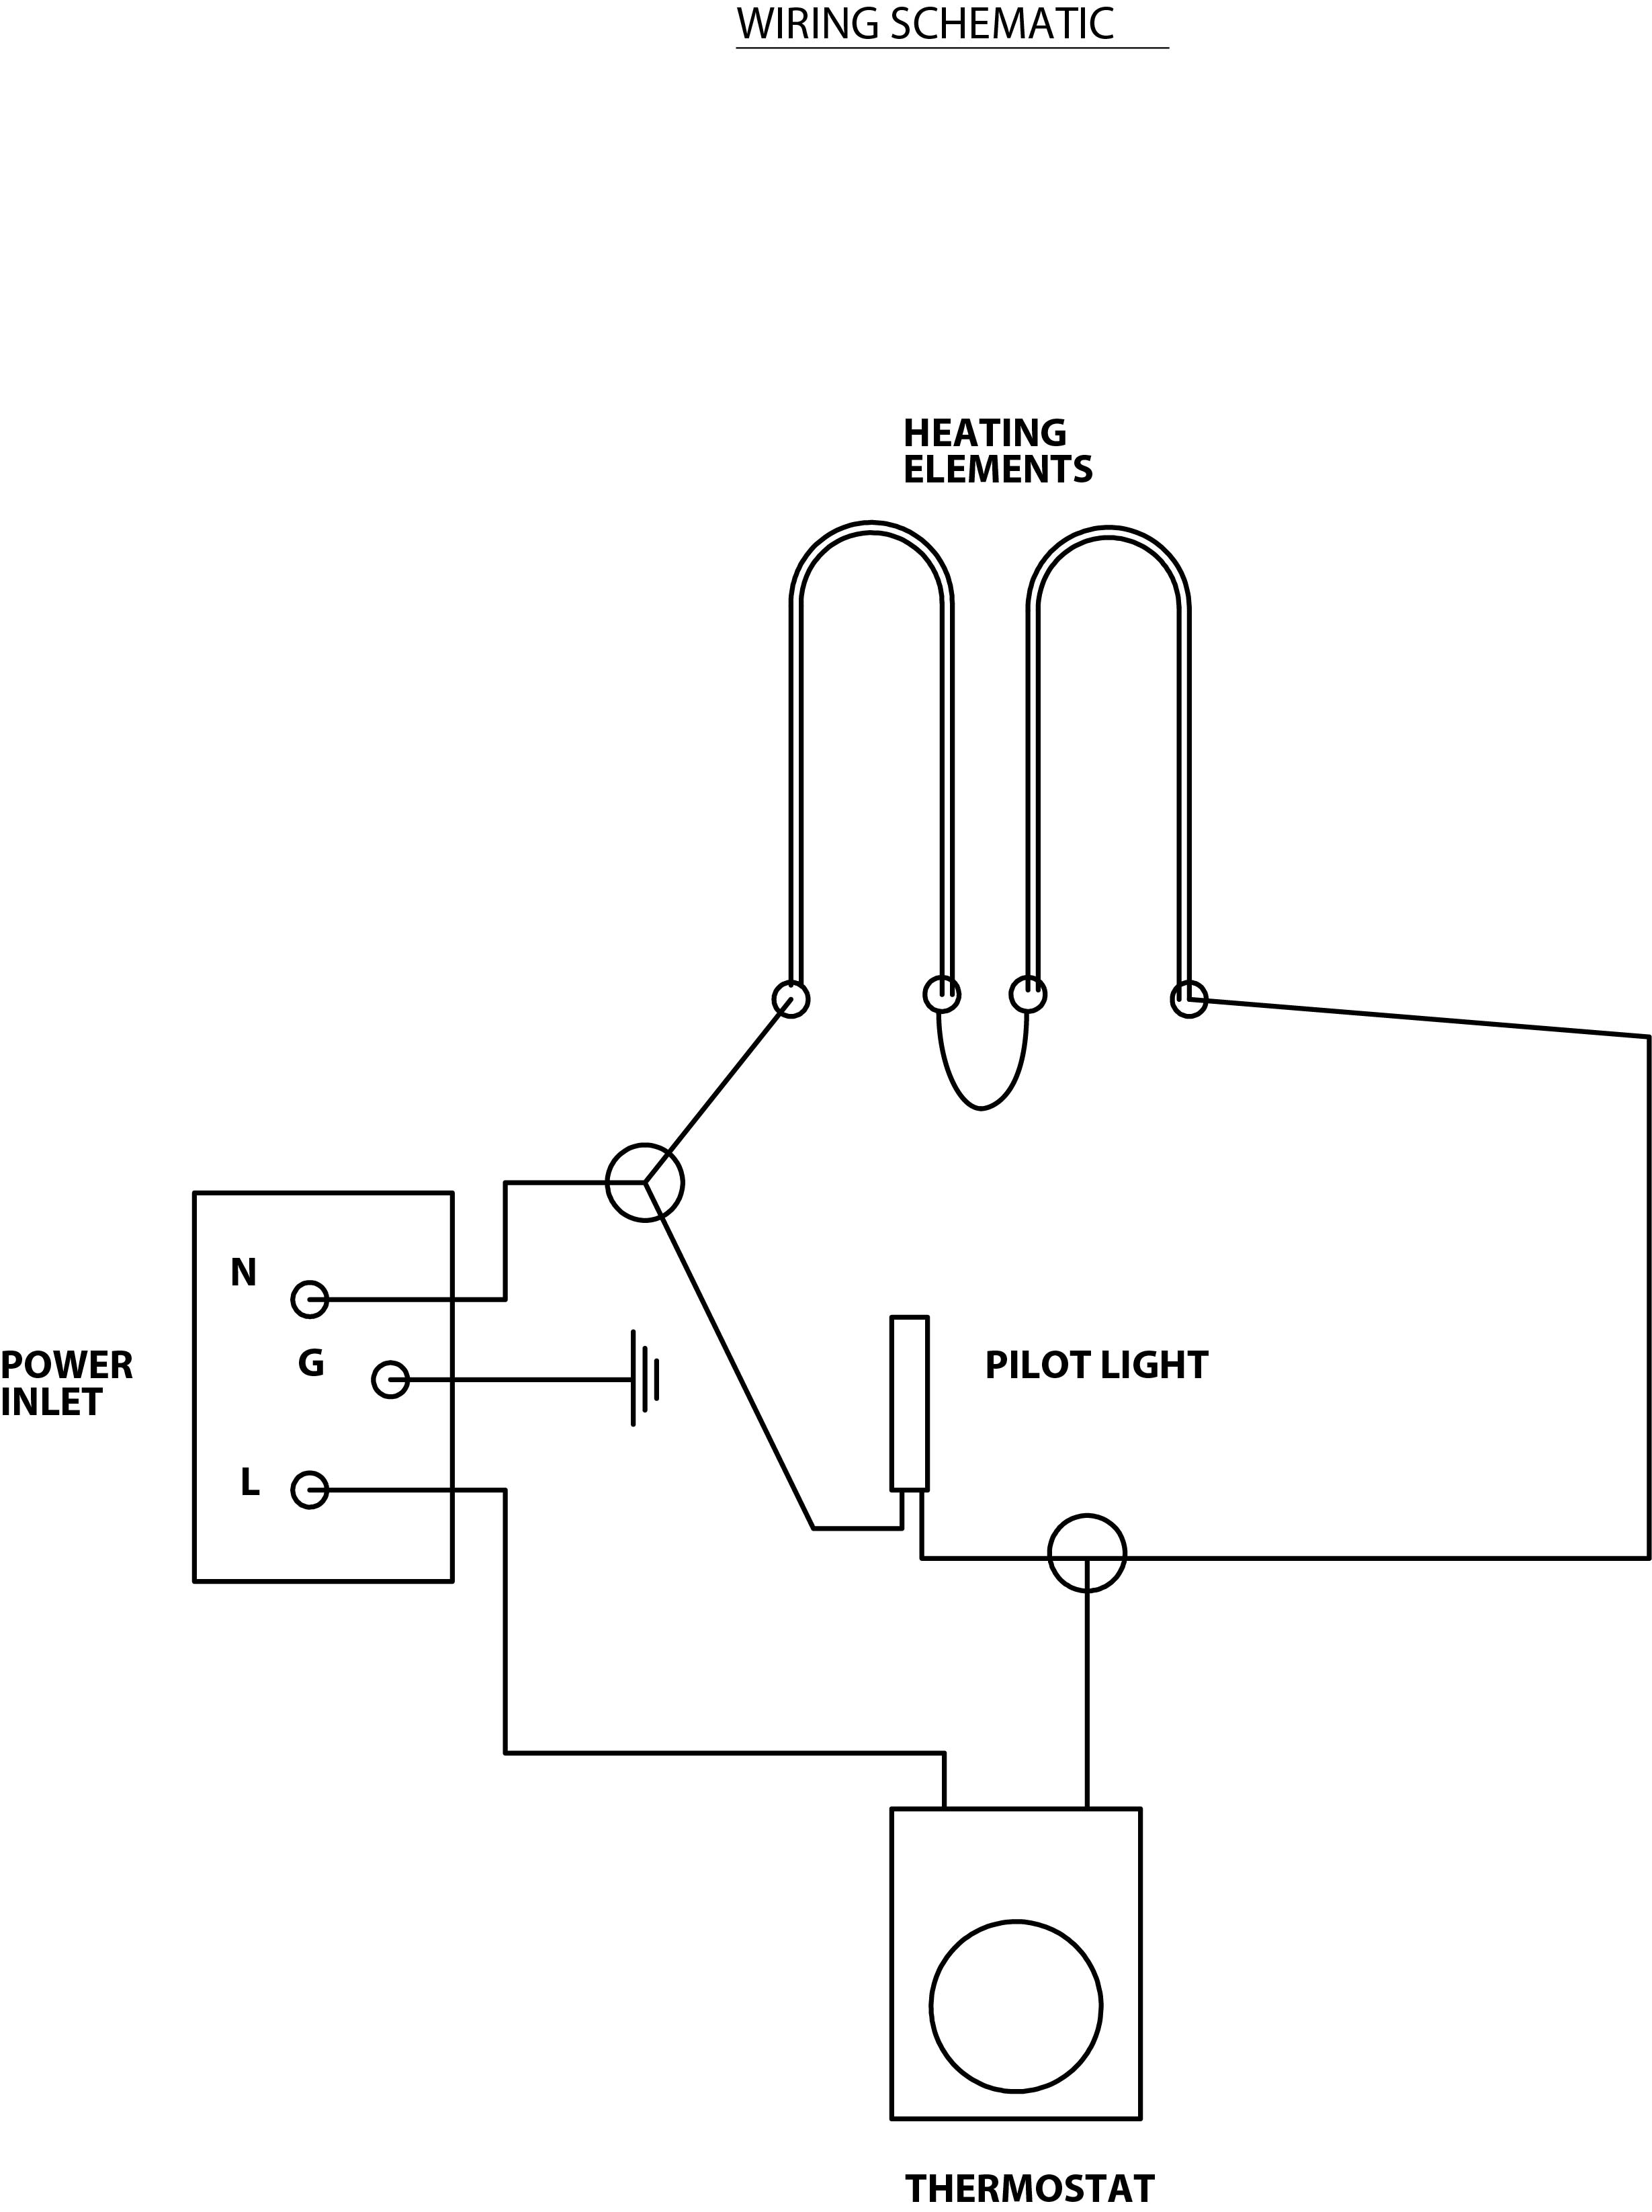 wrg 1056] fixture wiring diagram 240v 240V GFCI Breaker Diagram